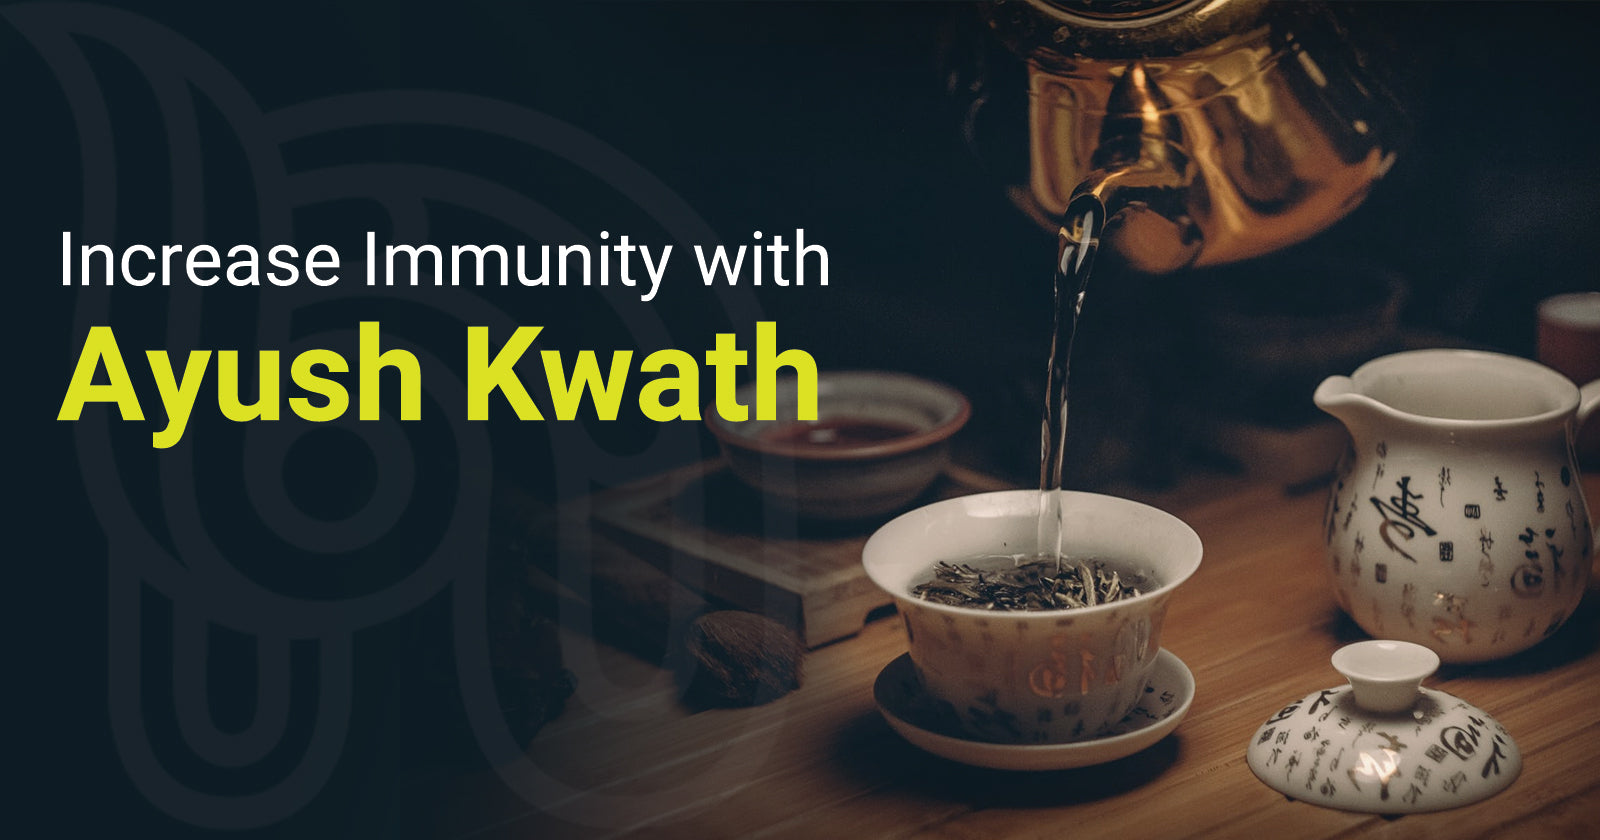 Increase Immunity with Ayush Kwath